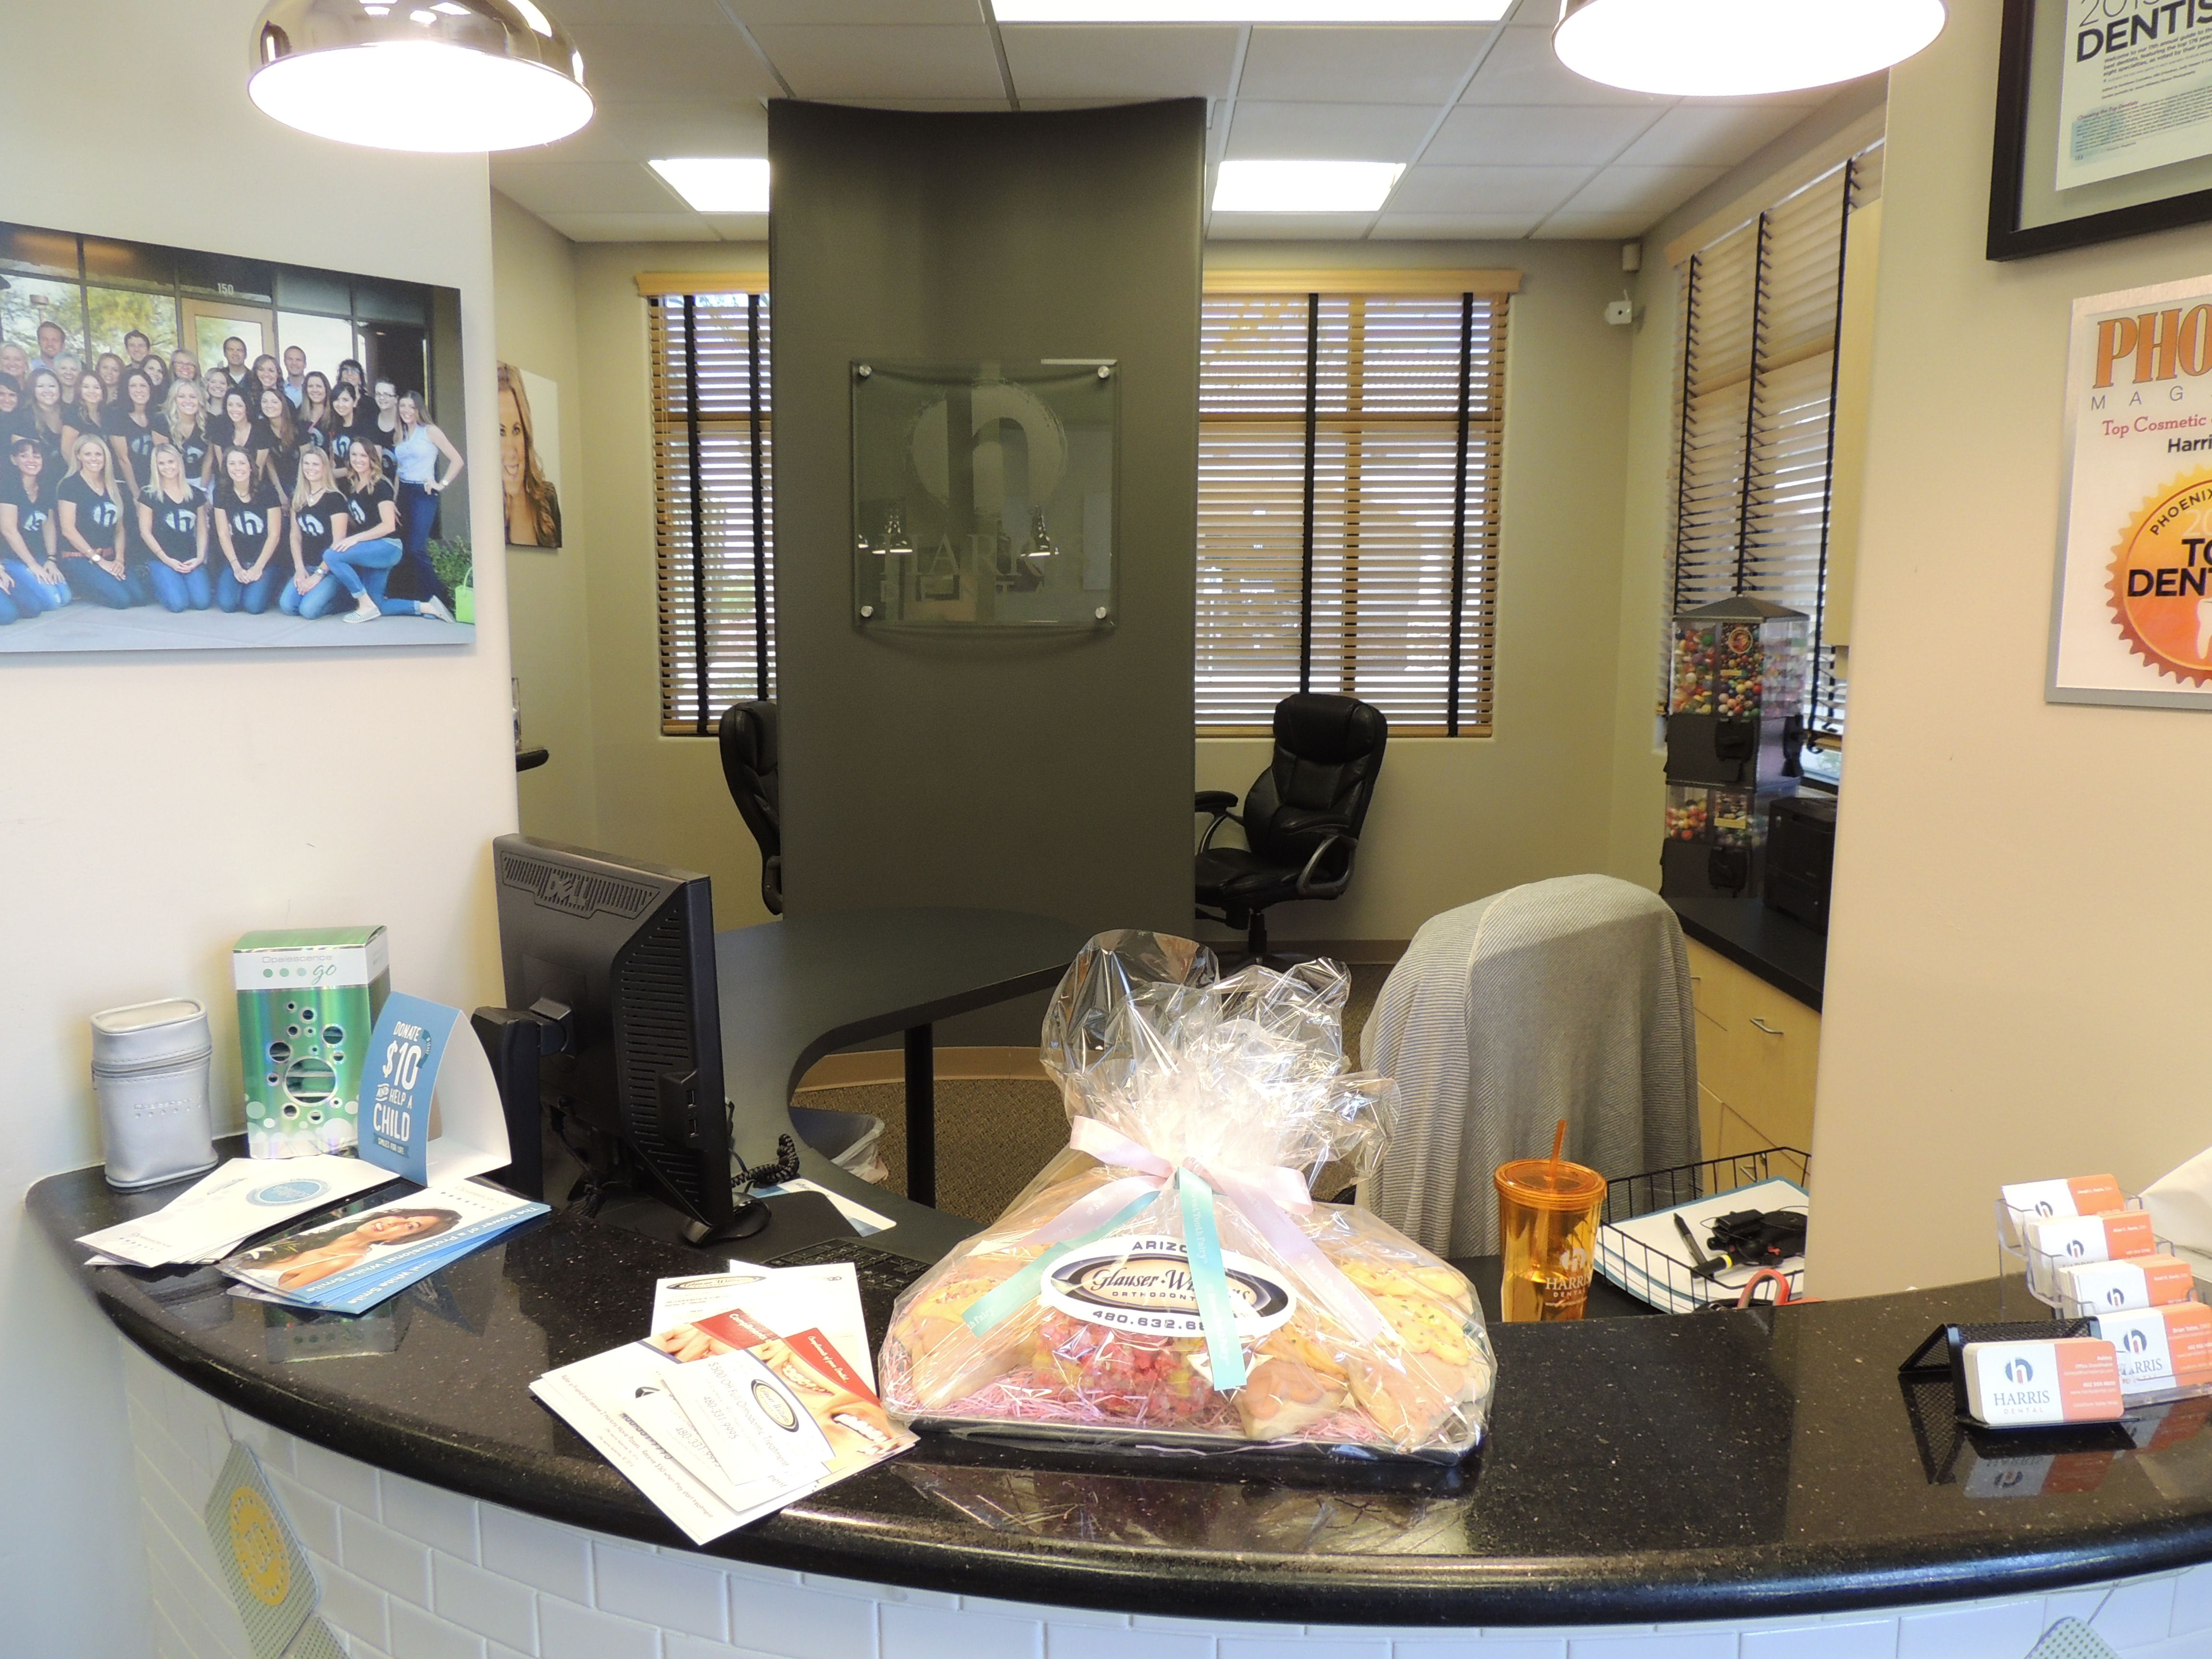 Harris dental mesa az delivered cookies to thank them for their